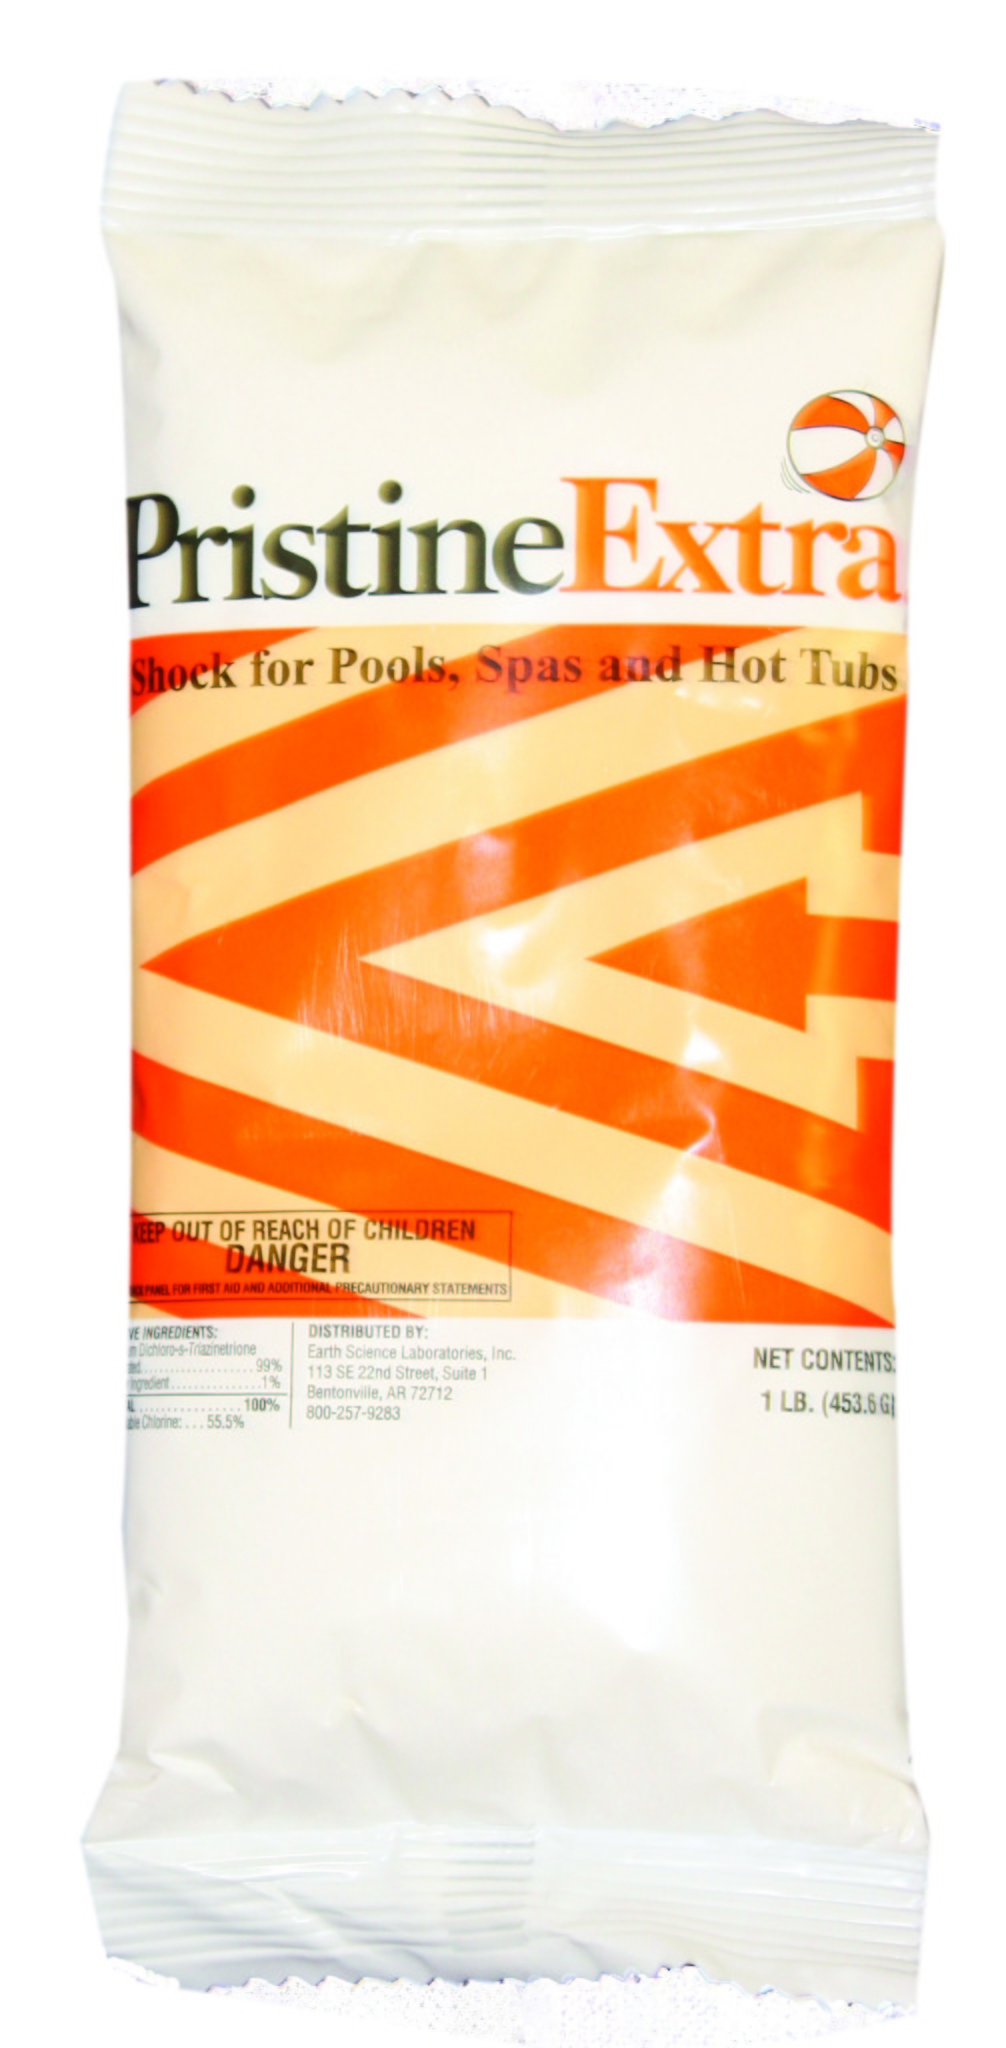 Pristine Extra 1lb Bag Call For Price Swimming Pool